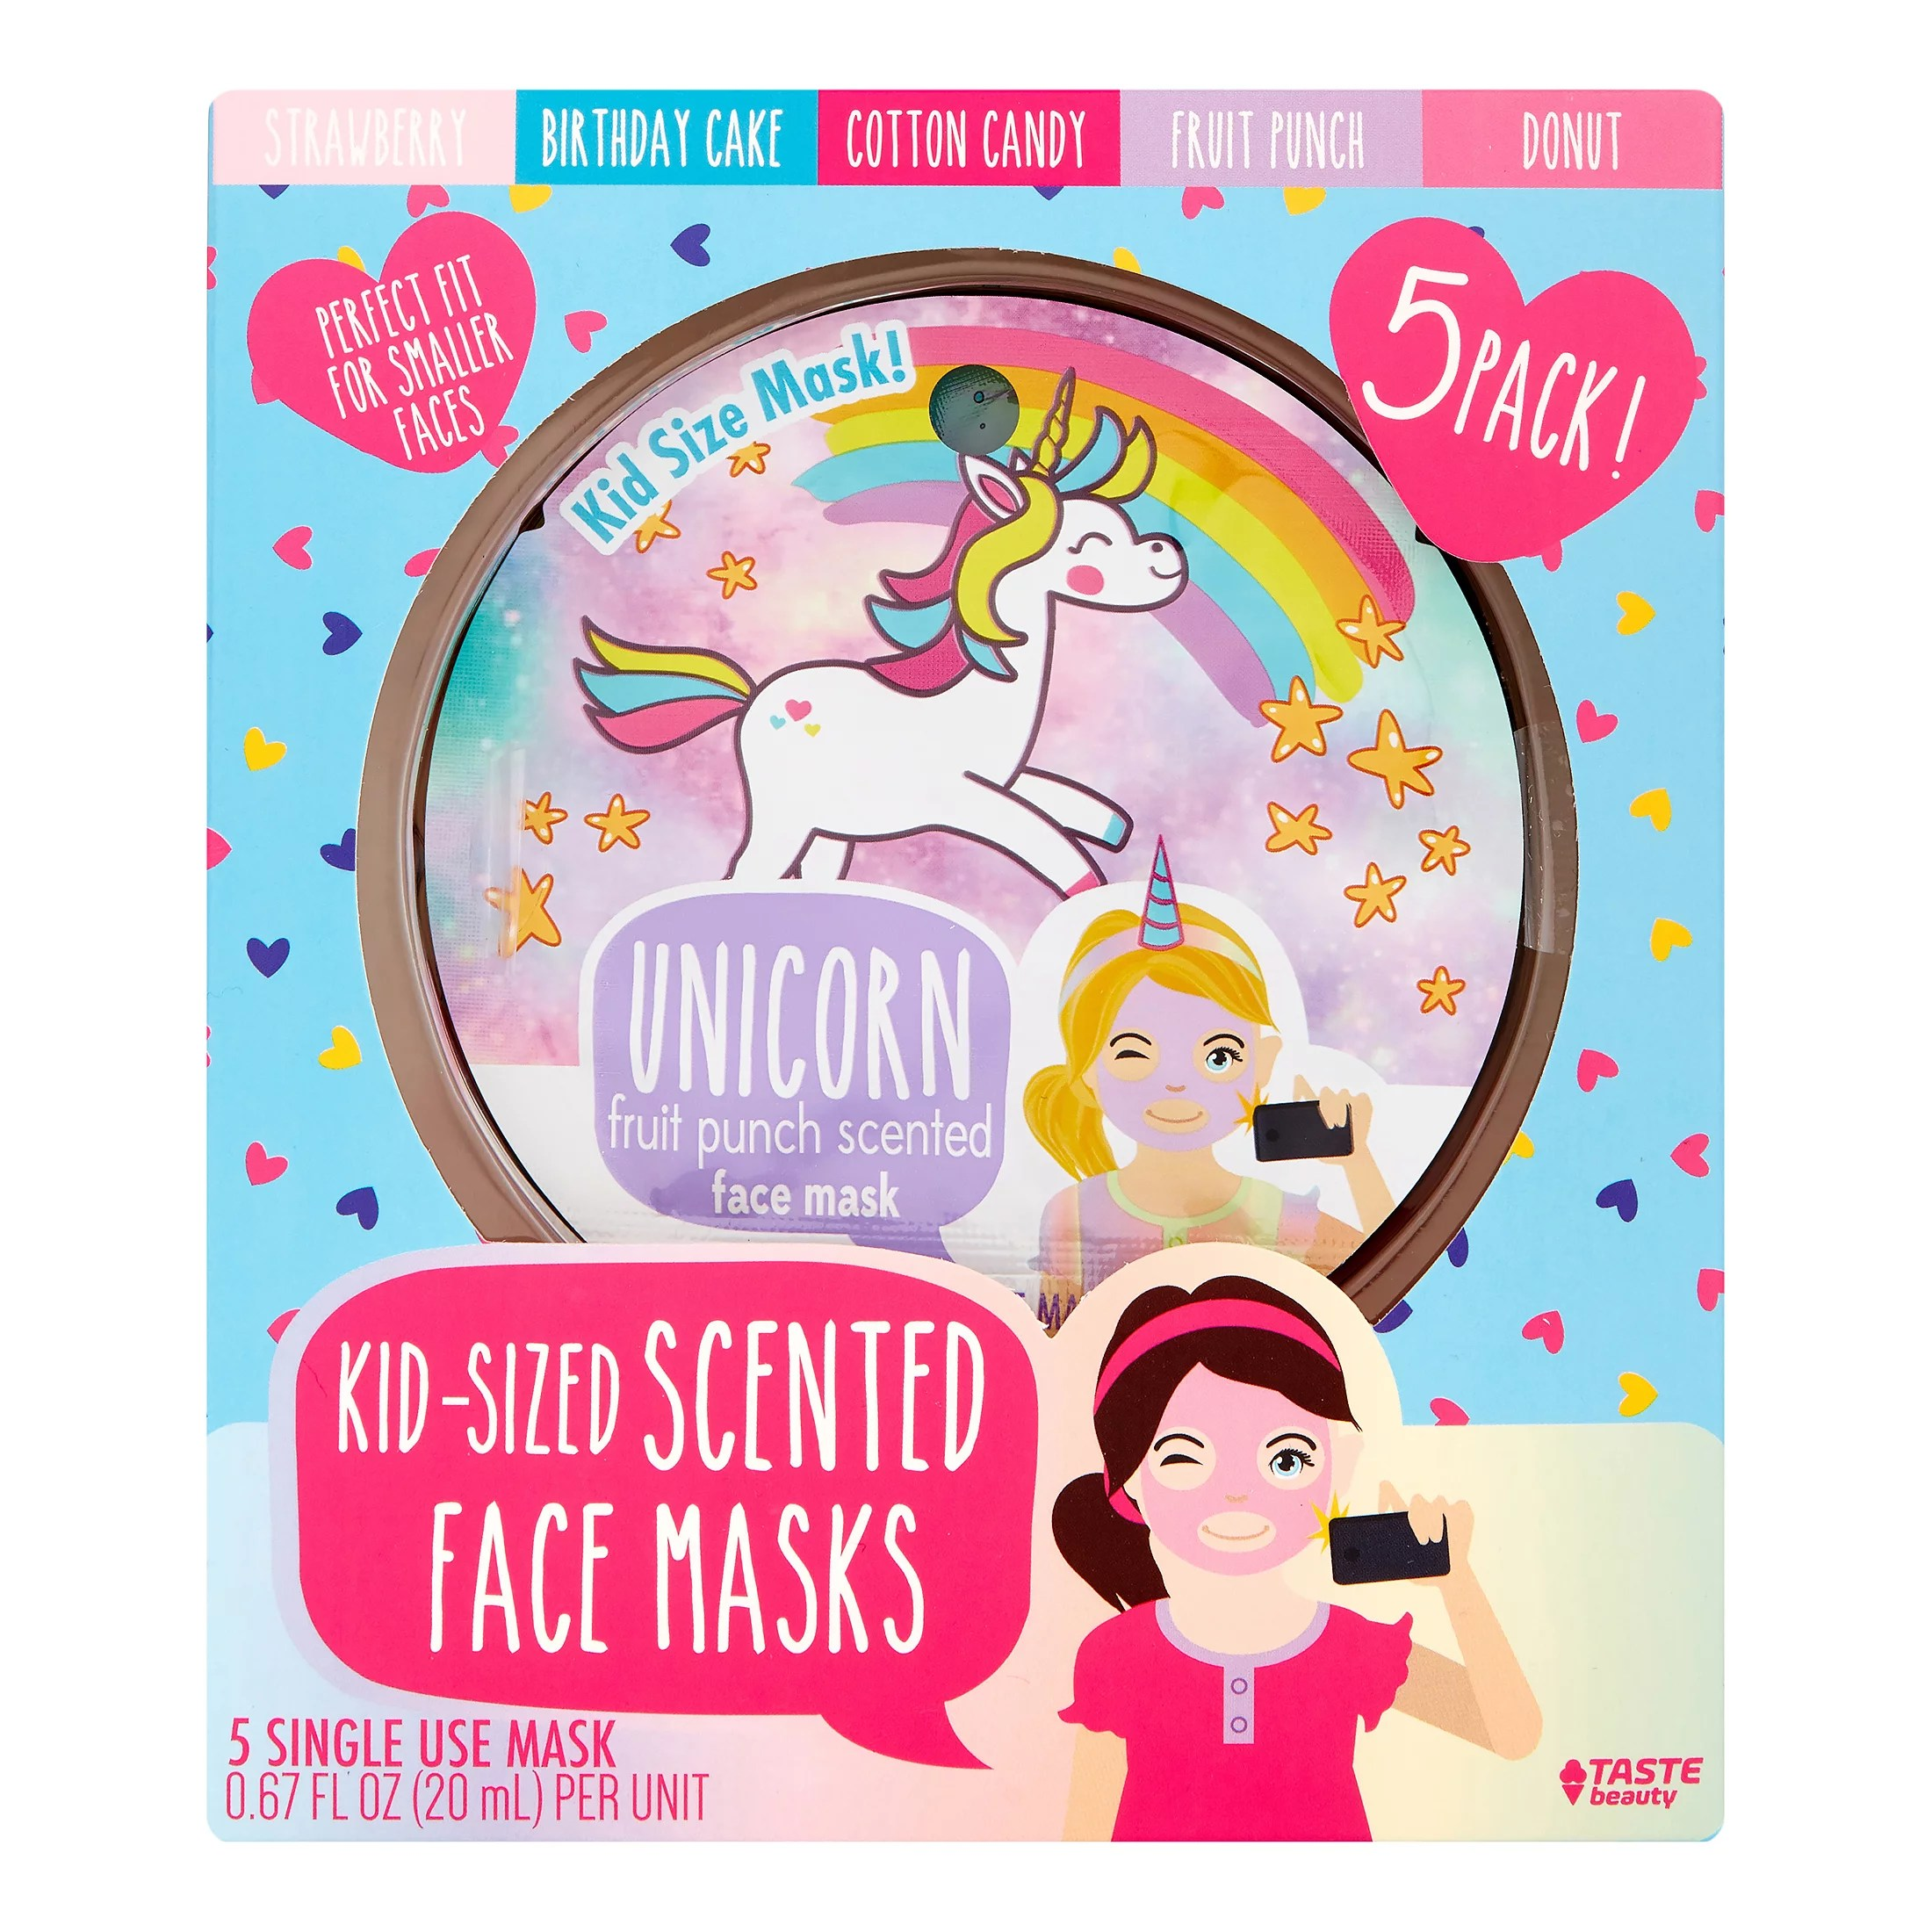 Taste Beauty Scented Face Masks For Kids 5 Pieces